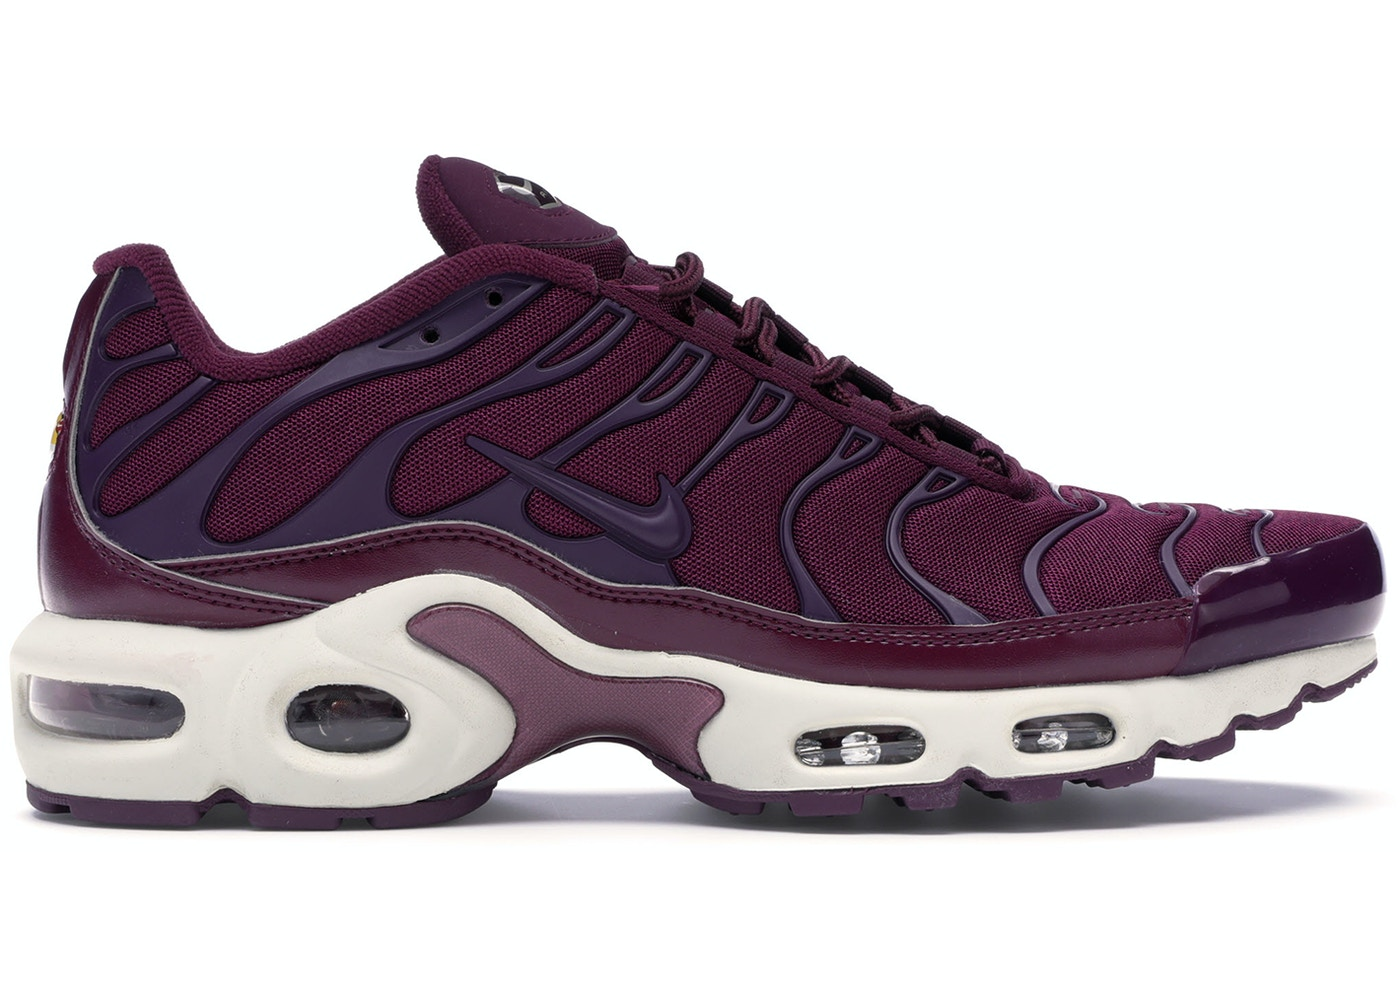 badf58b685 Air Max Plus TN Bordeaux (W) - AV7912-600